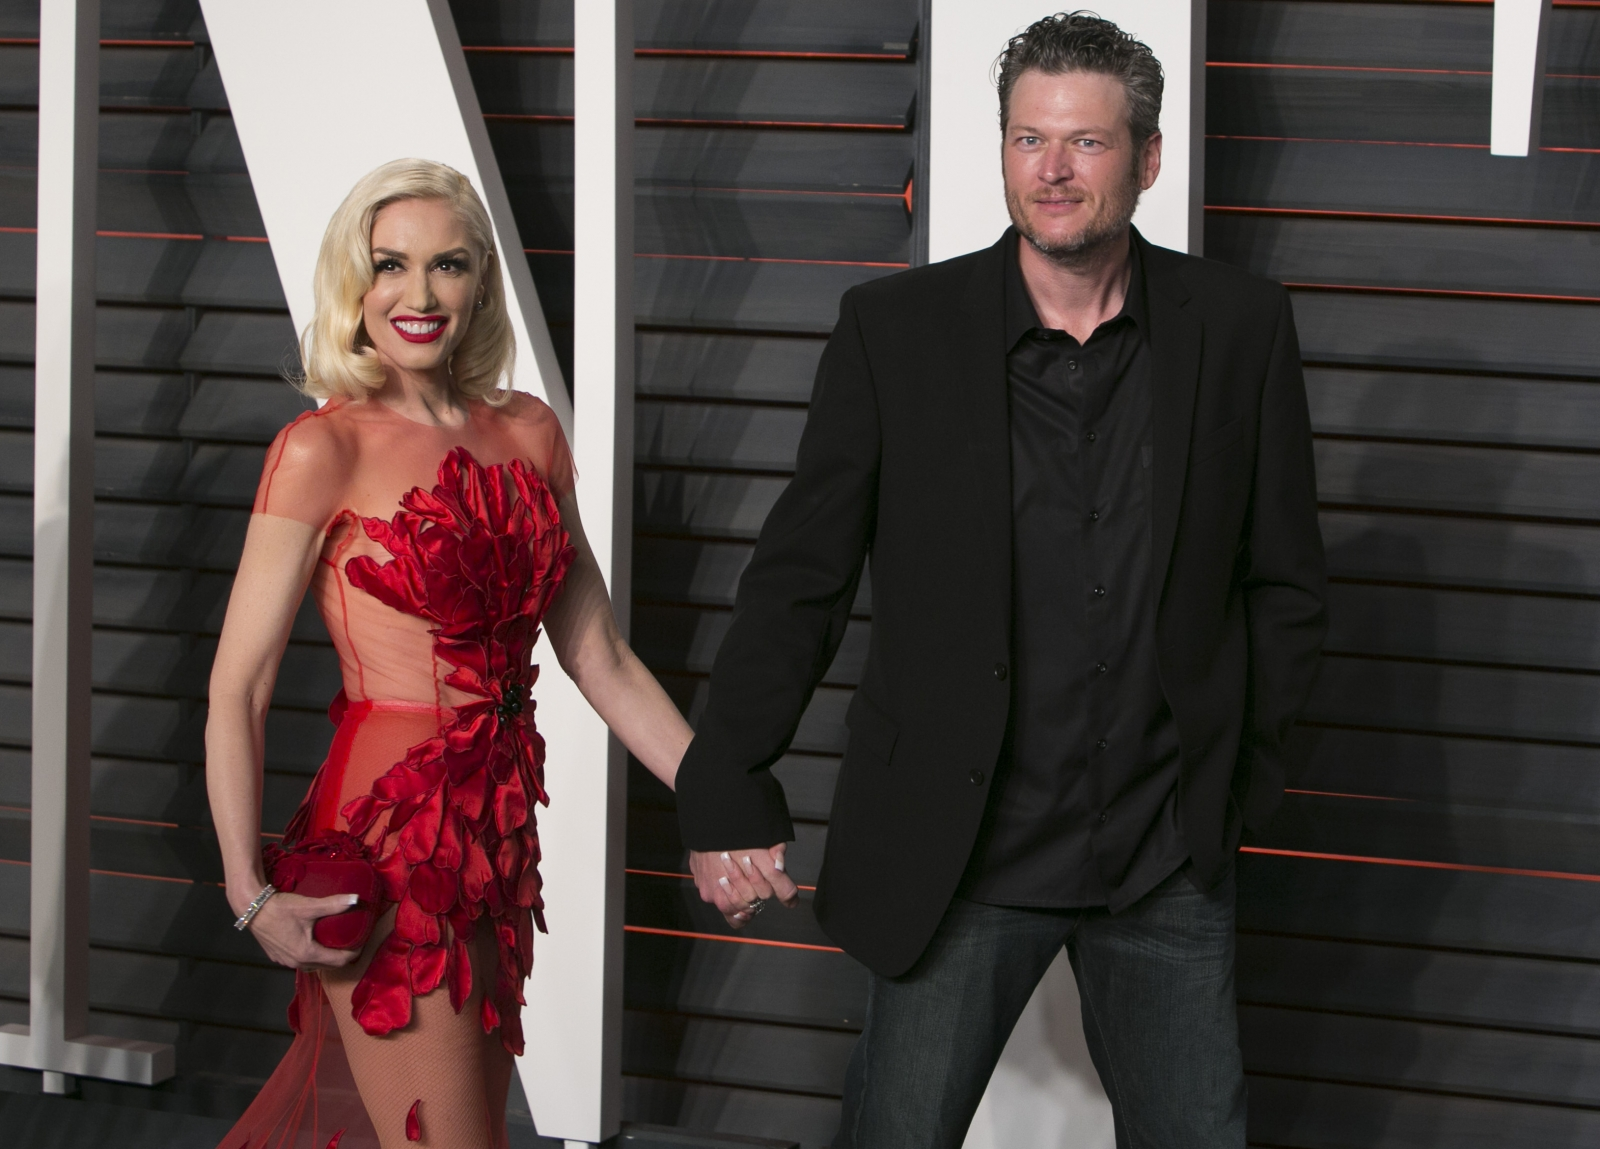 Gwen Stefani and Blake Shelto